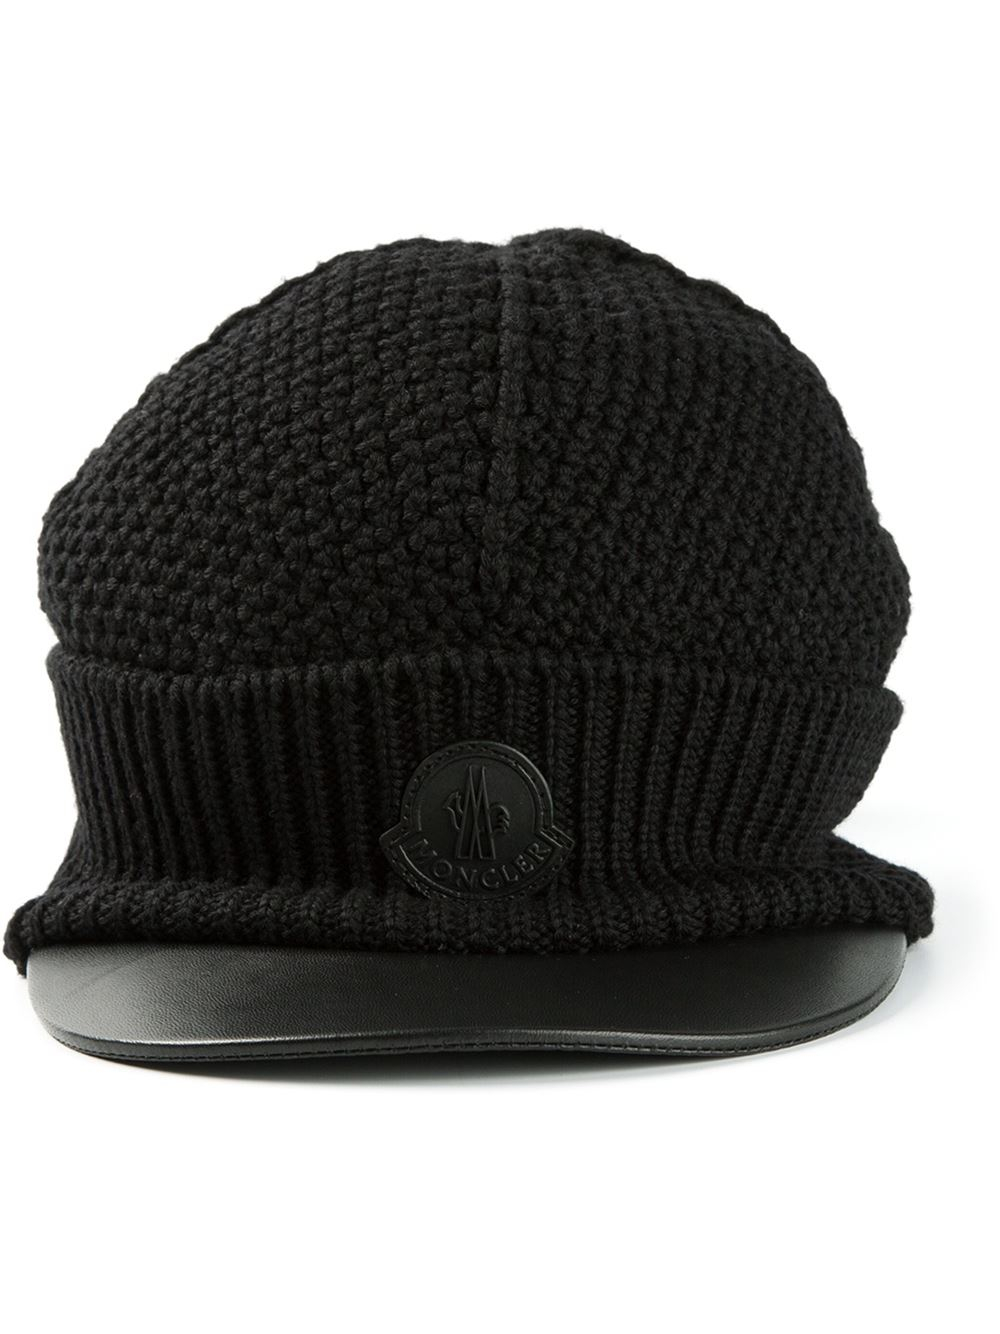 5b8ede7f18f moncler chunky knit hat